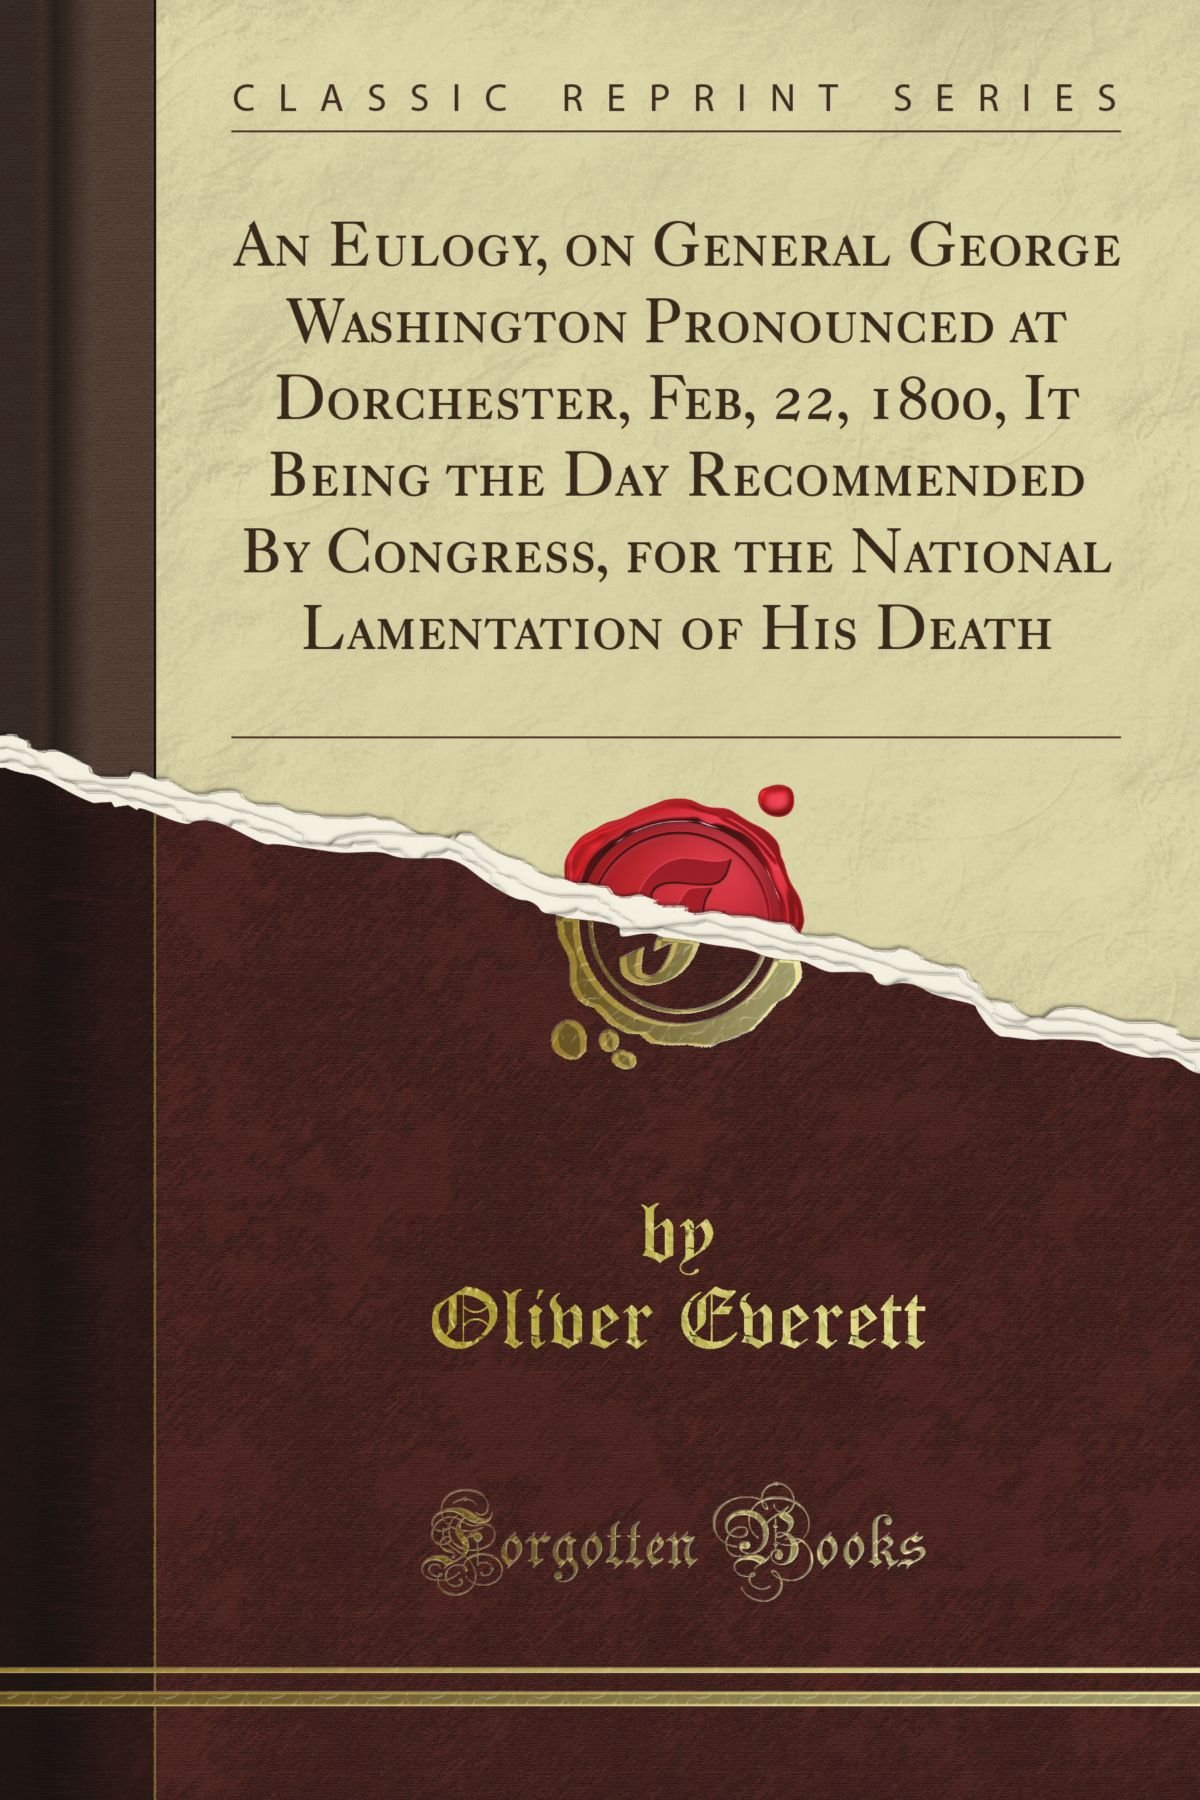 An Eulogy, on General George Washington Pronounced at Dorchester, Feb, 22, 1800, It Being the Day Recommended By Congress, for the National Lamentation of His Death (Classic Reprint) pdf